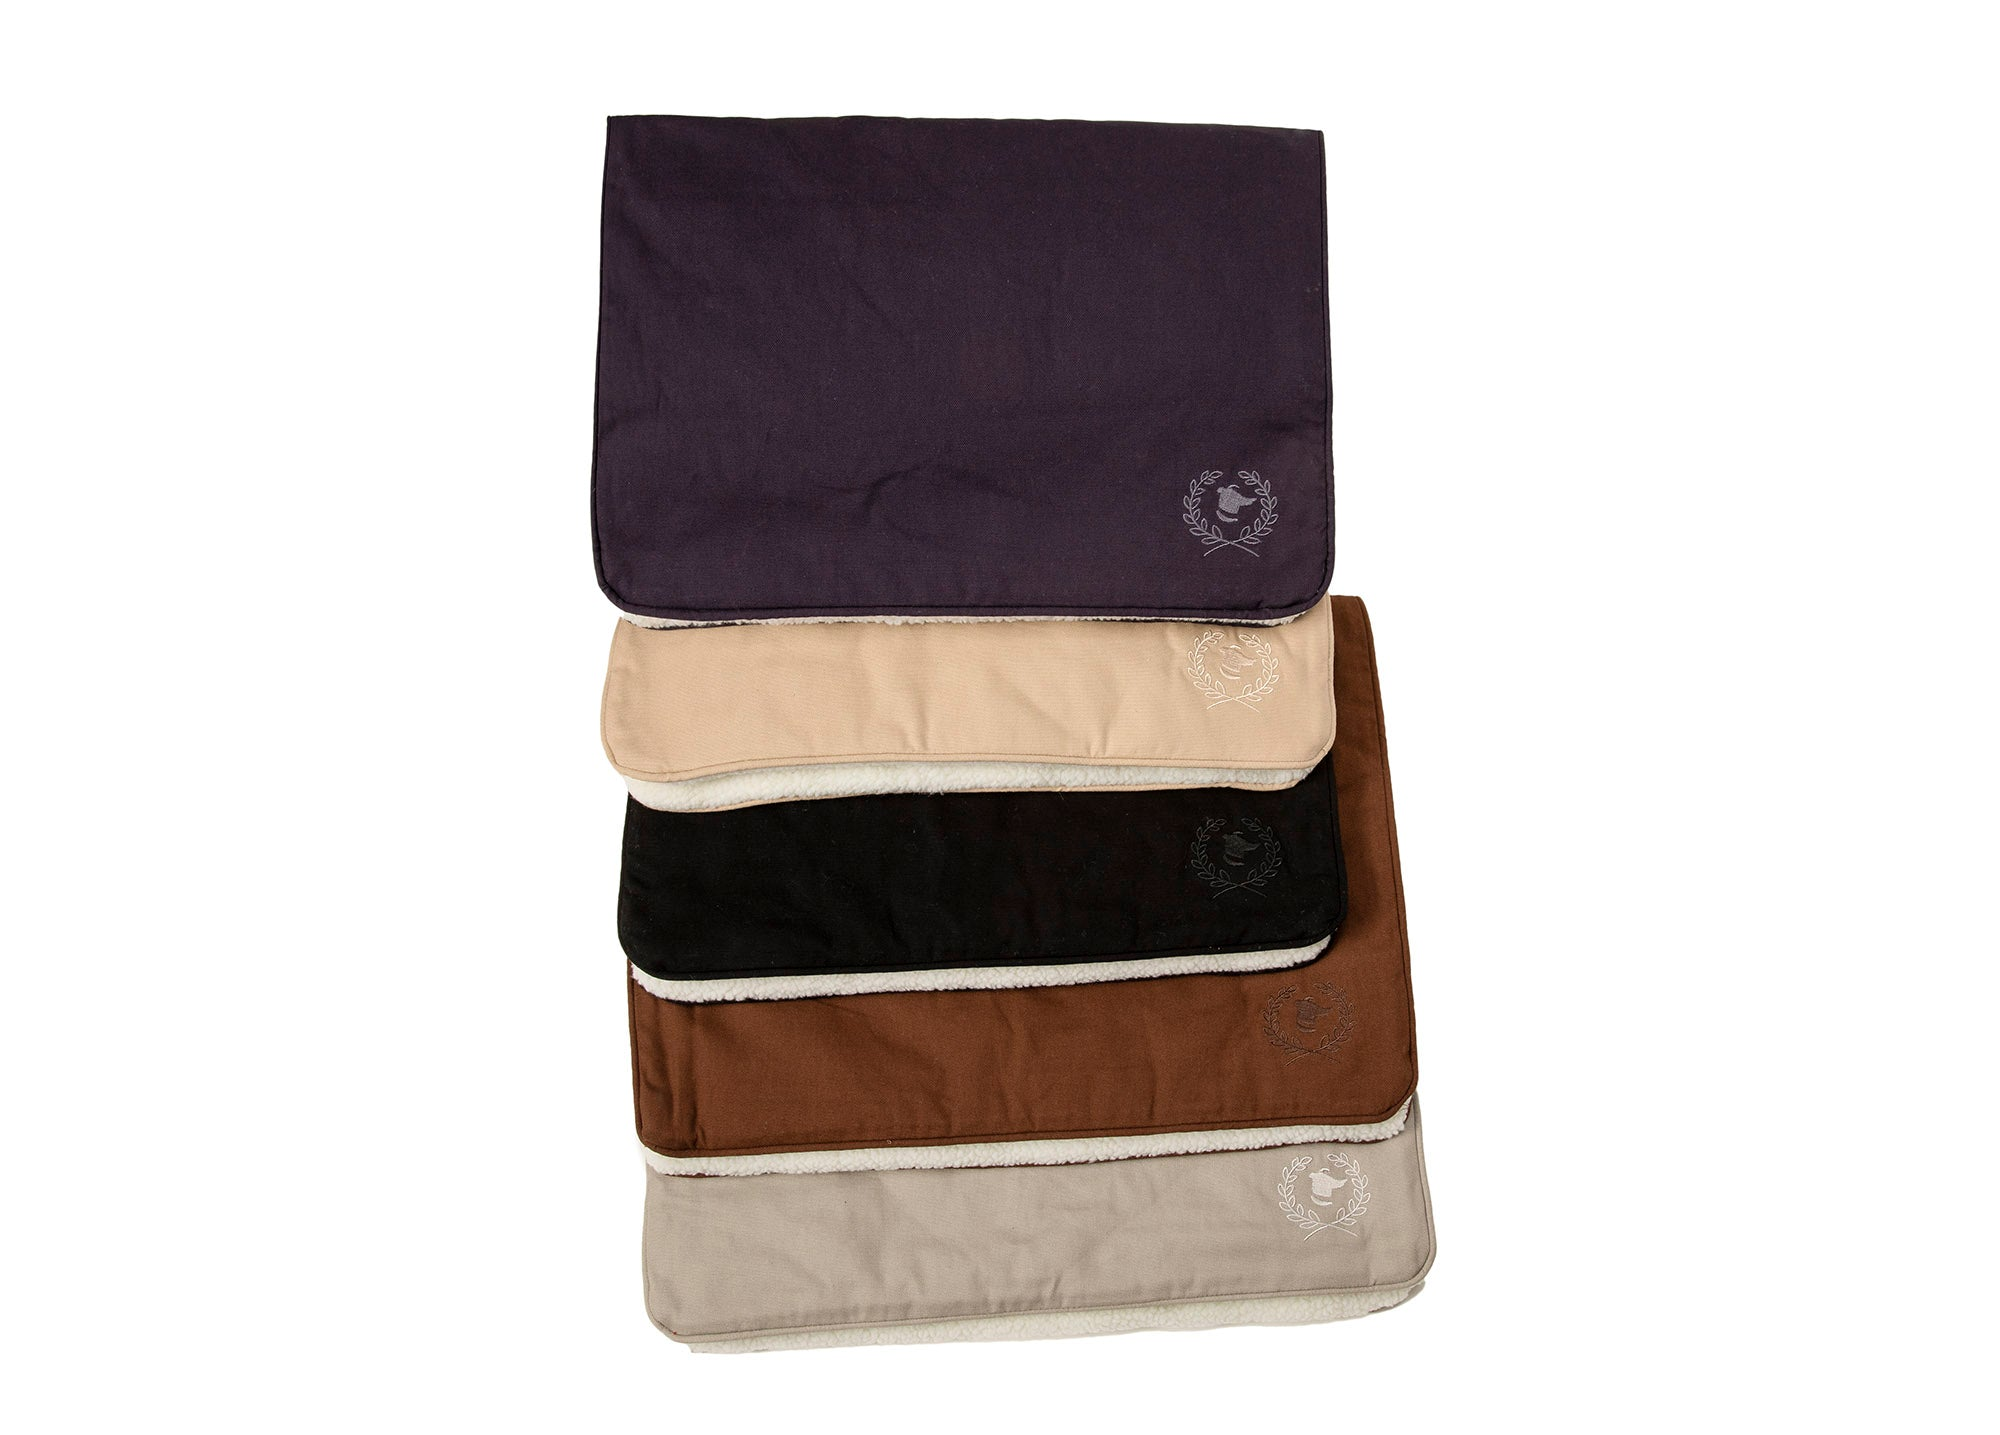 Canine Styles - Solid Monochromatic with self colored piping - Navy, Tan, Black, Brown & Gray